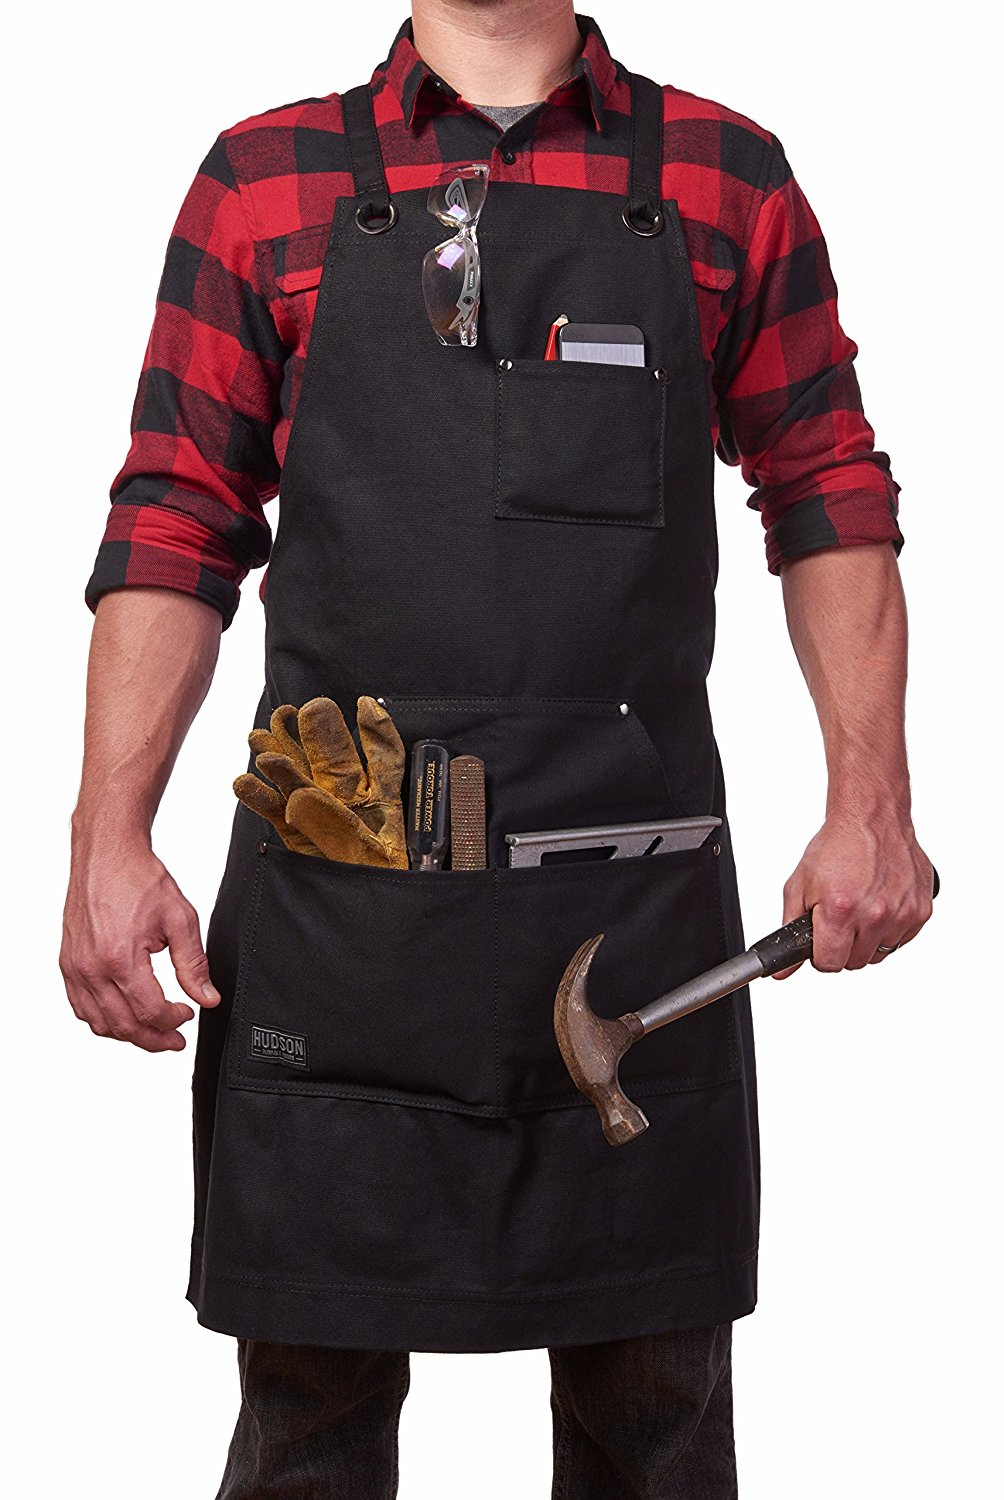 Hudson Durable Goods - Heavy Duty Waxed Canvas Work Apron with Tool Pockets (Black), $31.95